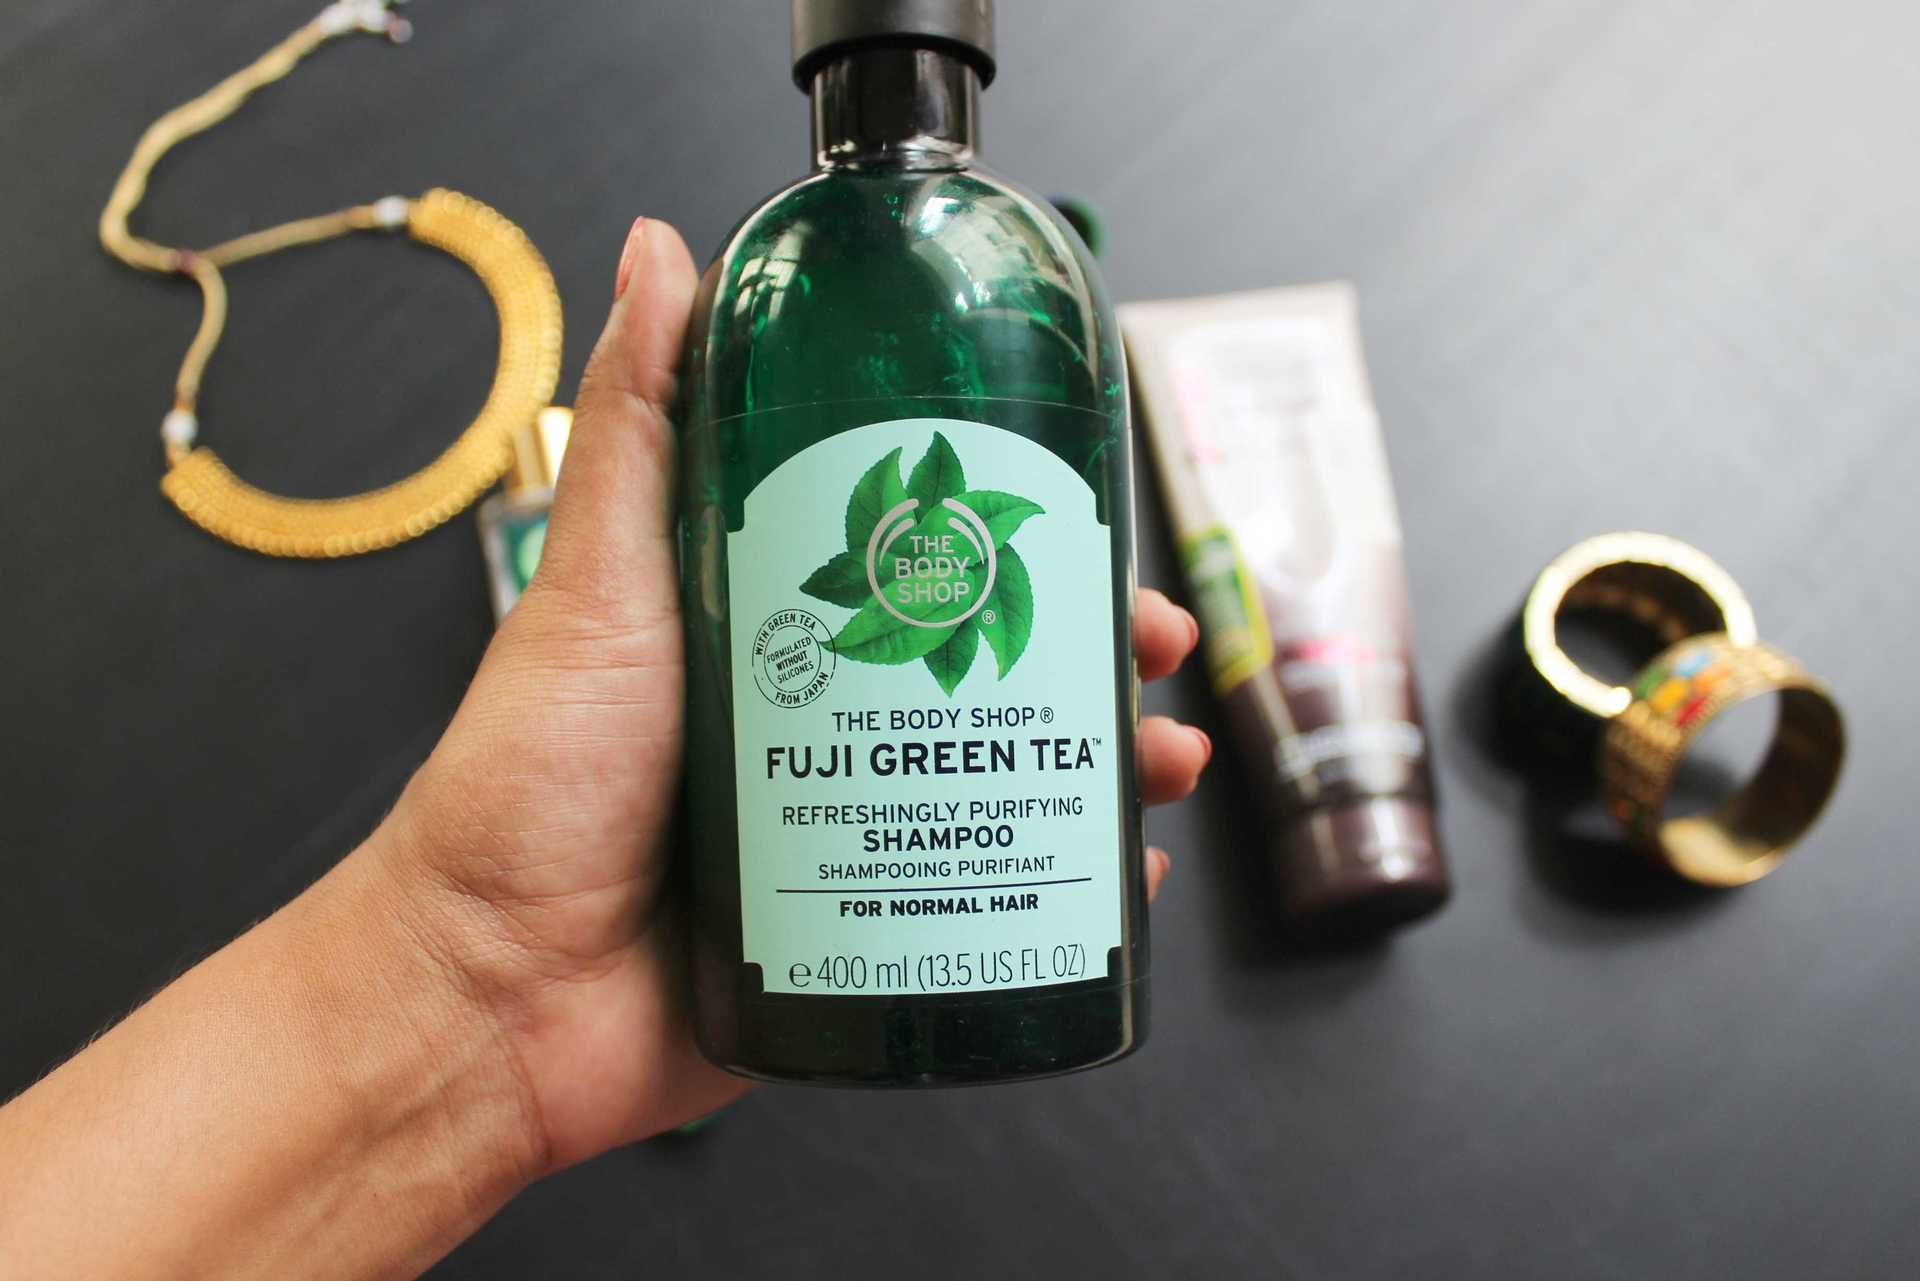 IshtyleAwhile - TBS Fuji Green Tea Shampoo review